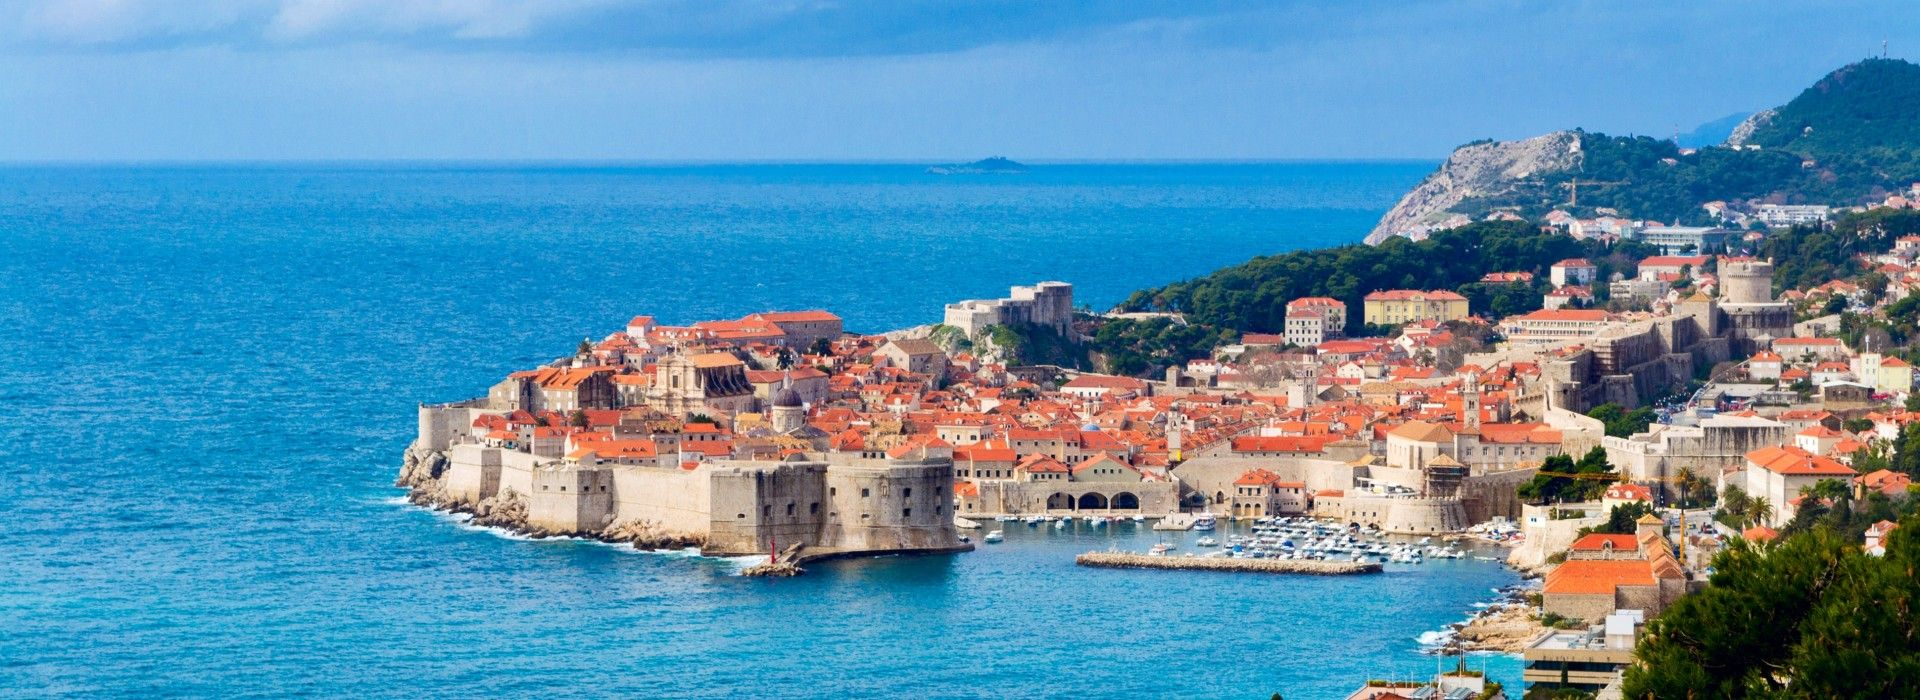 Sightseeing, attractions, culture and history Tours in Trogir